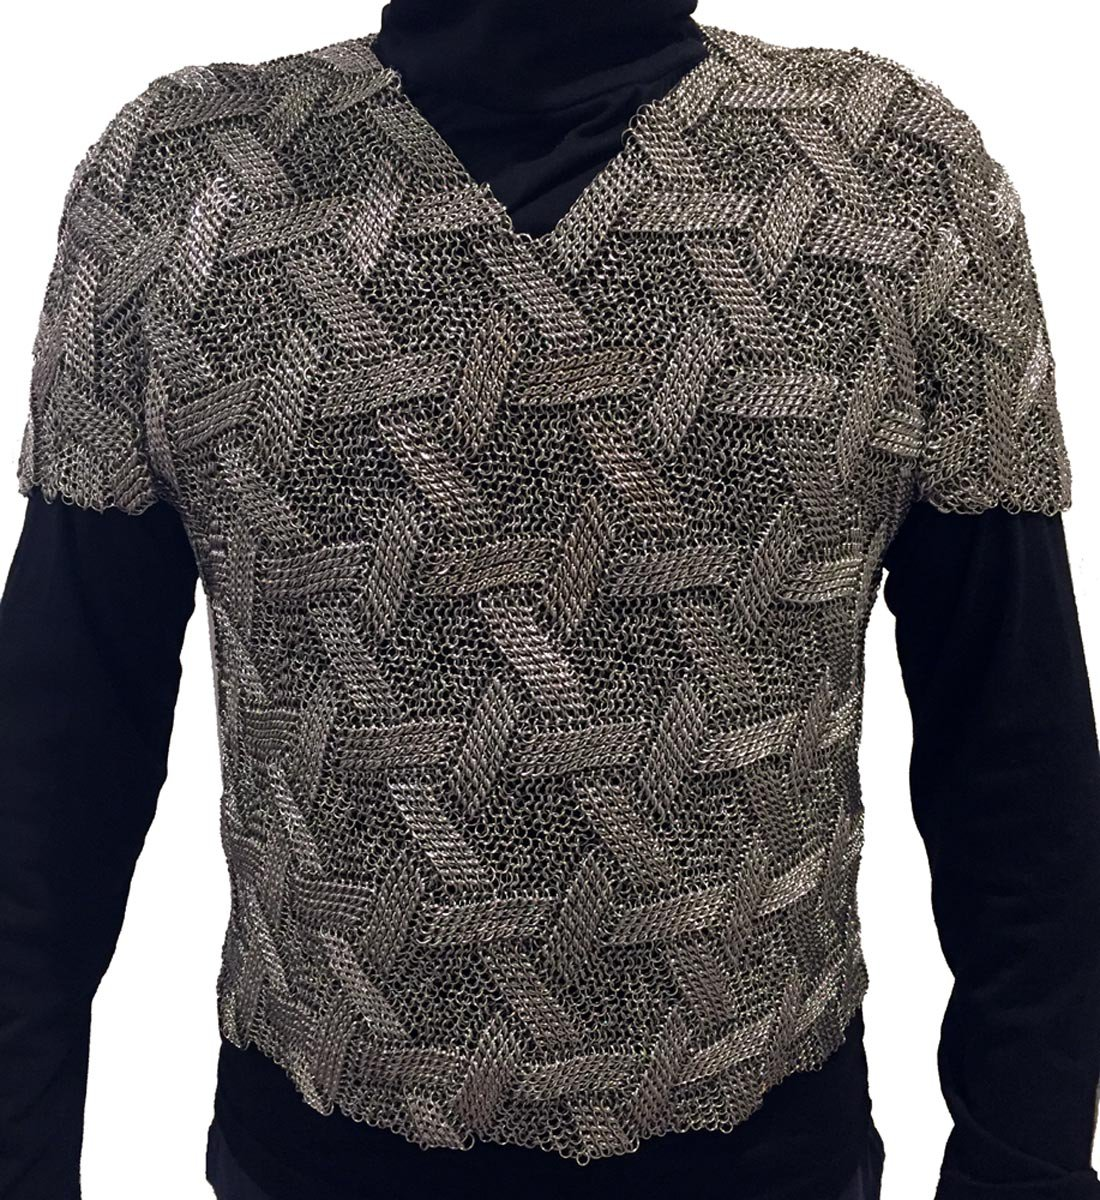 Star of David patterned shirt